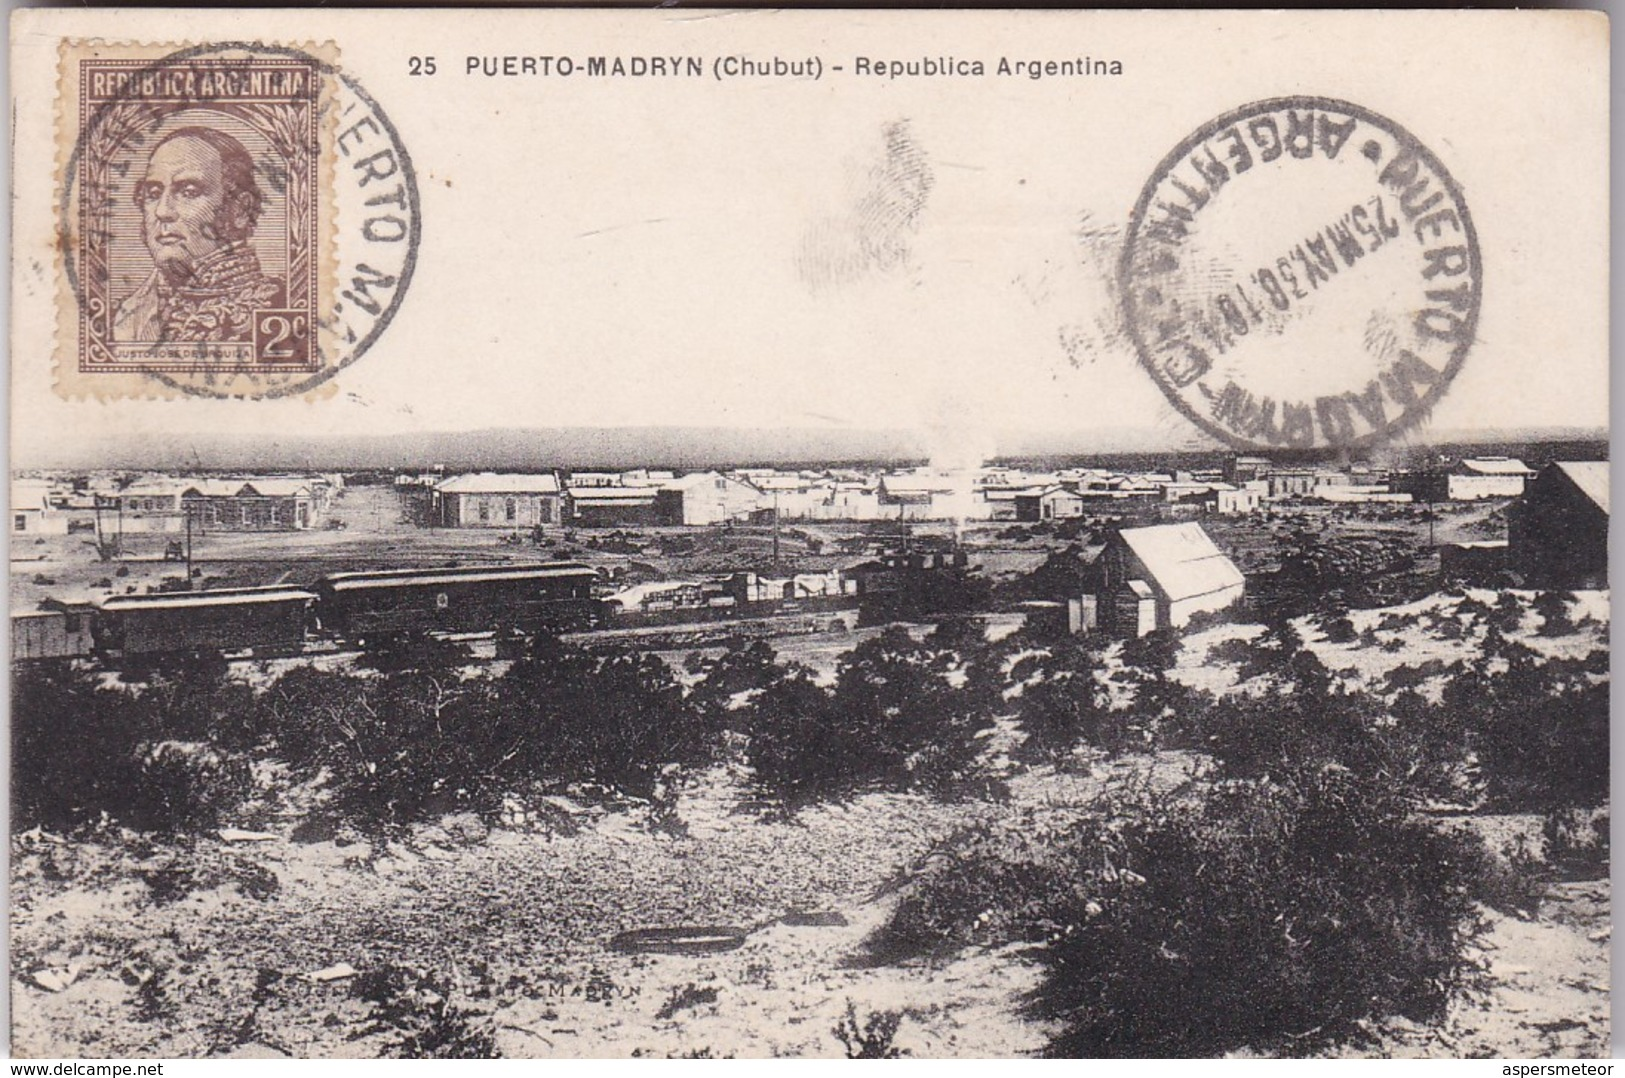 PUERTO MADRYN, CHUBUT. GENERAL VIEW. ARGENTINA POSTAL CARD CPA CIRCULATED 1938 PUERTO MADRYN TO BUENOS AIRES. -LILHU - Argentine